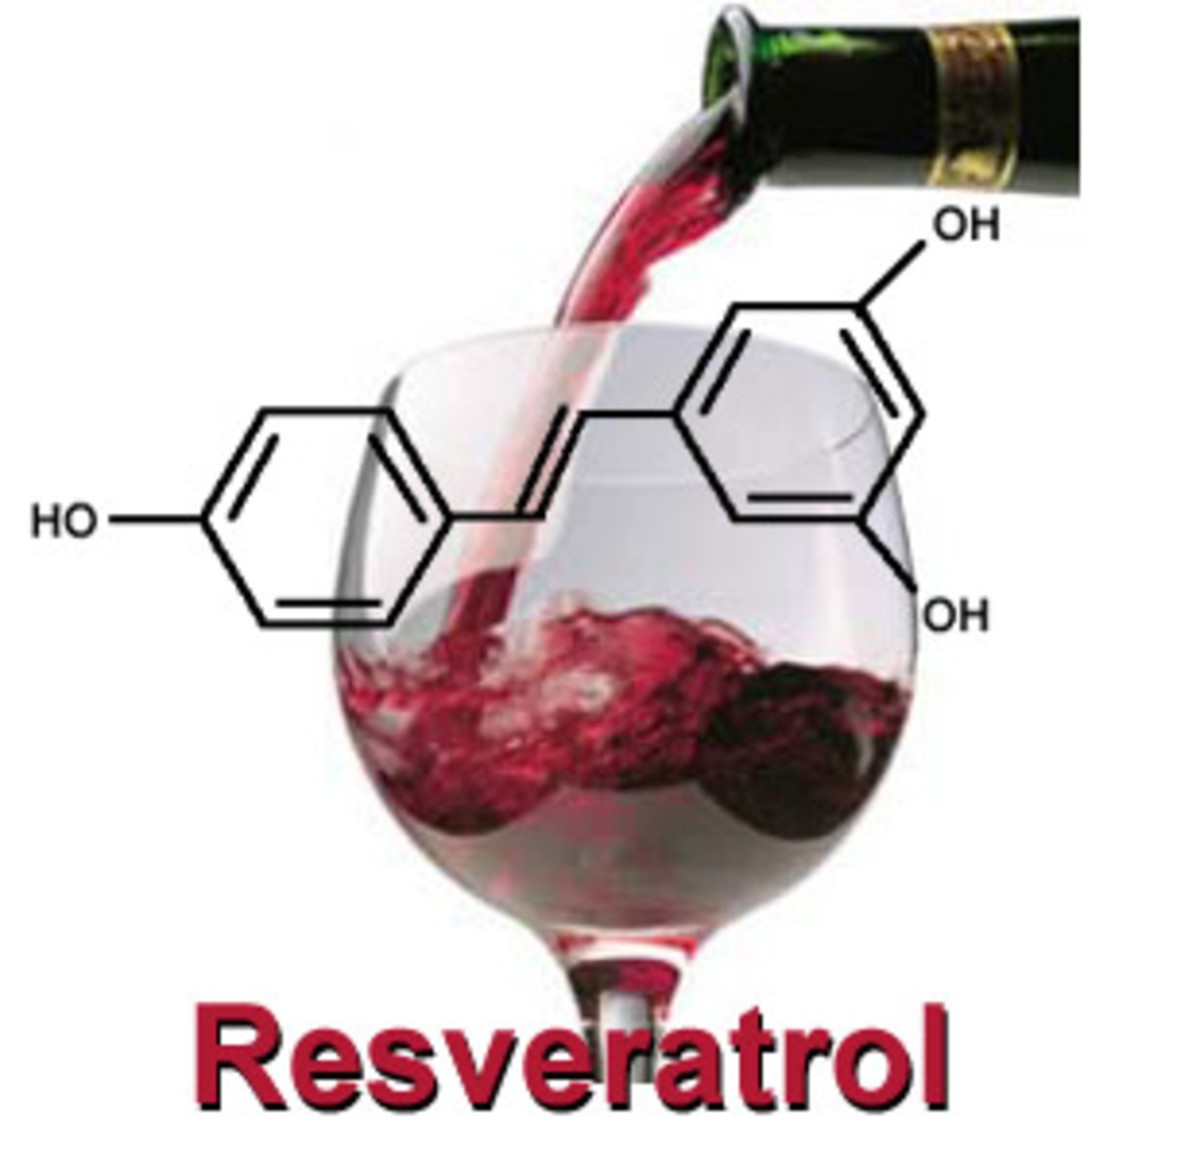 What Are Resveratrol Supplements?